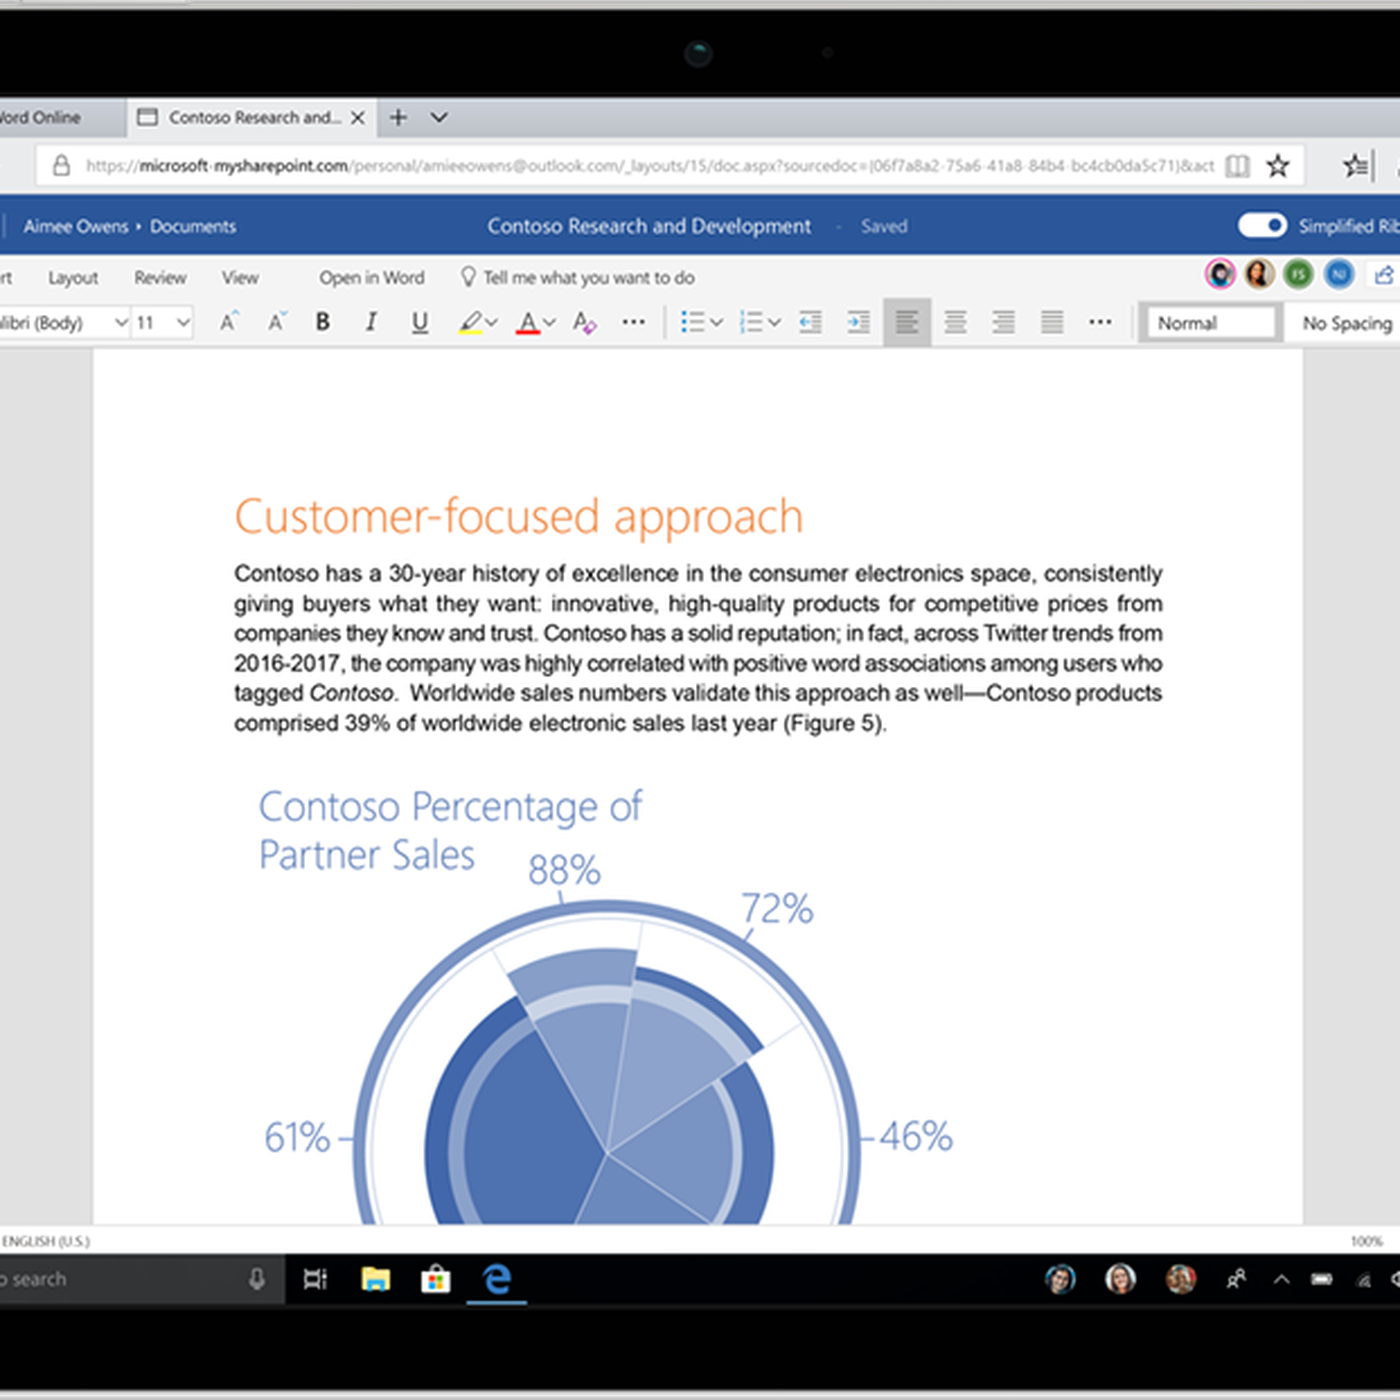 Microsoft Office's new Fluent Design overhaul makes it